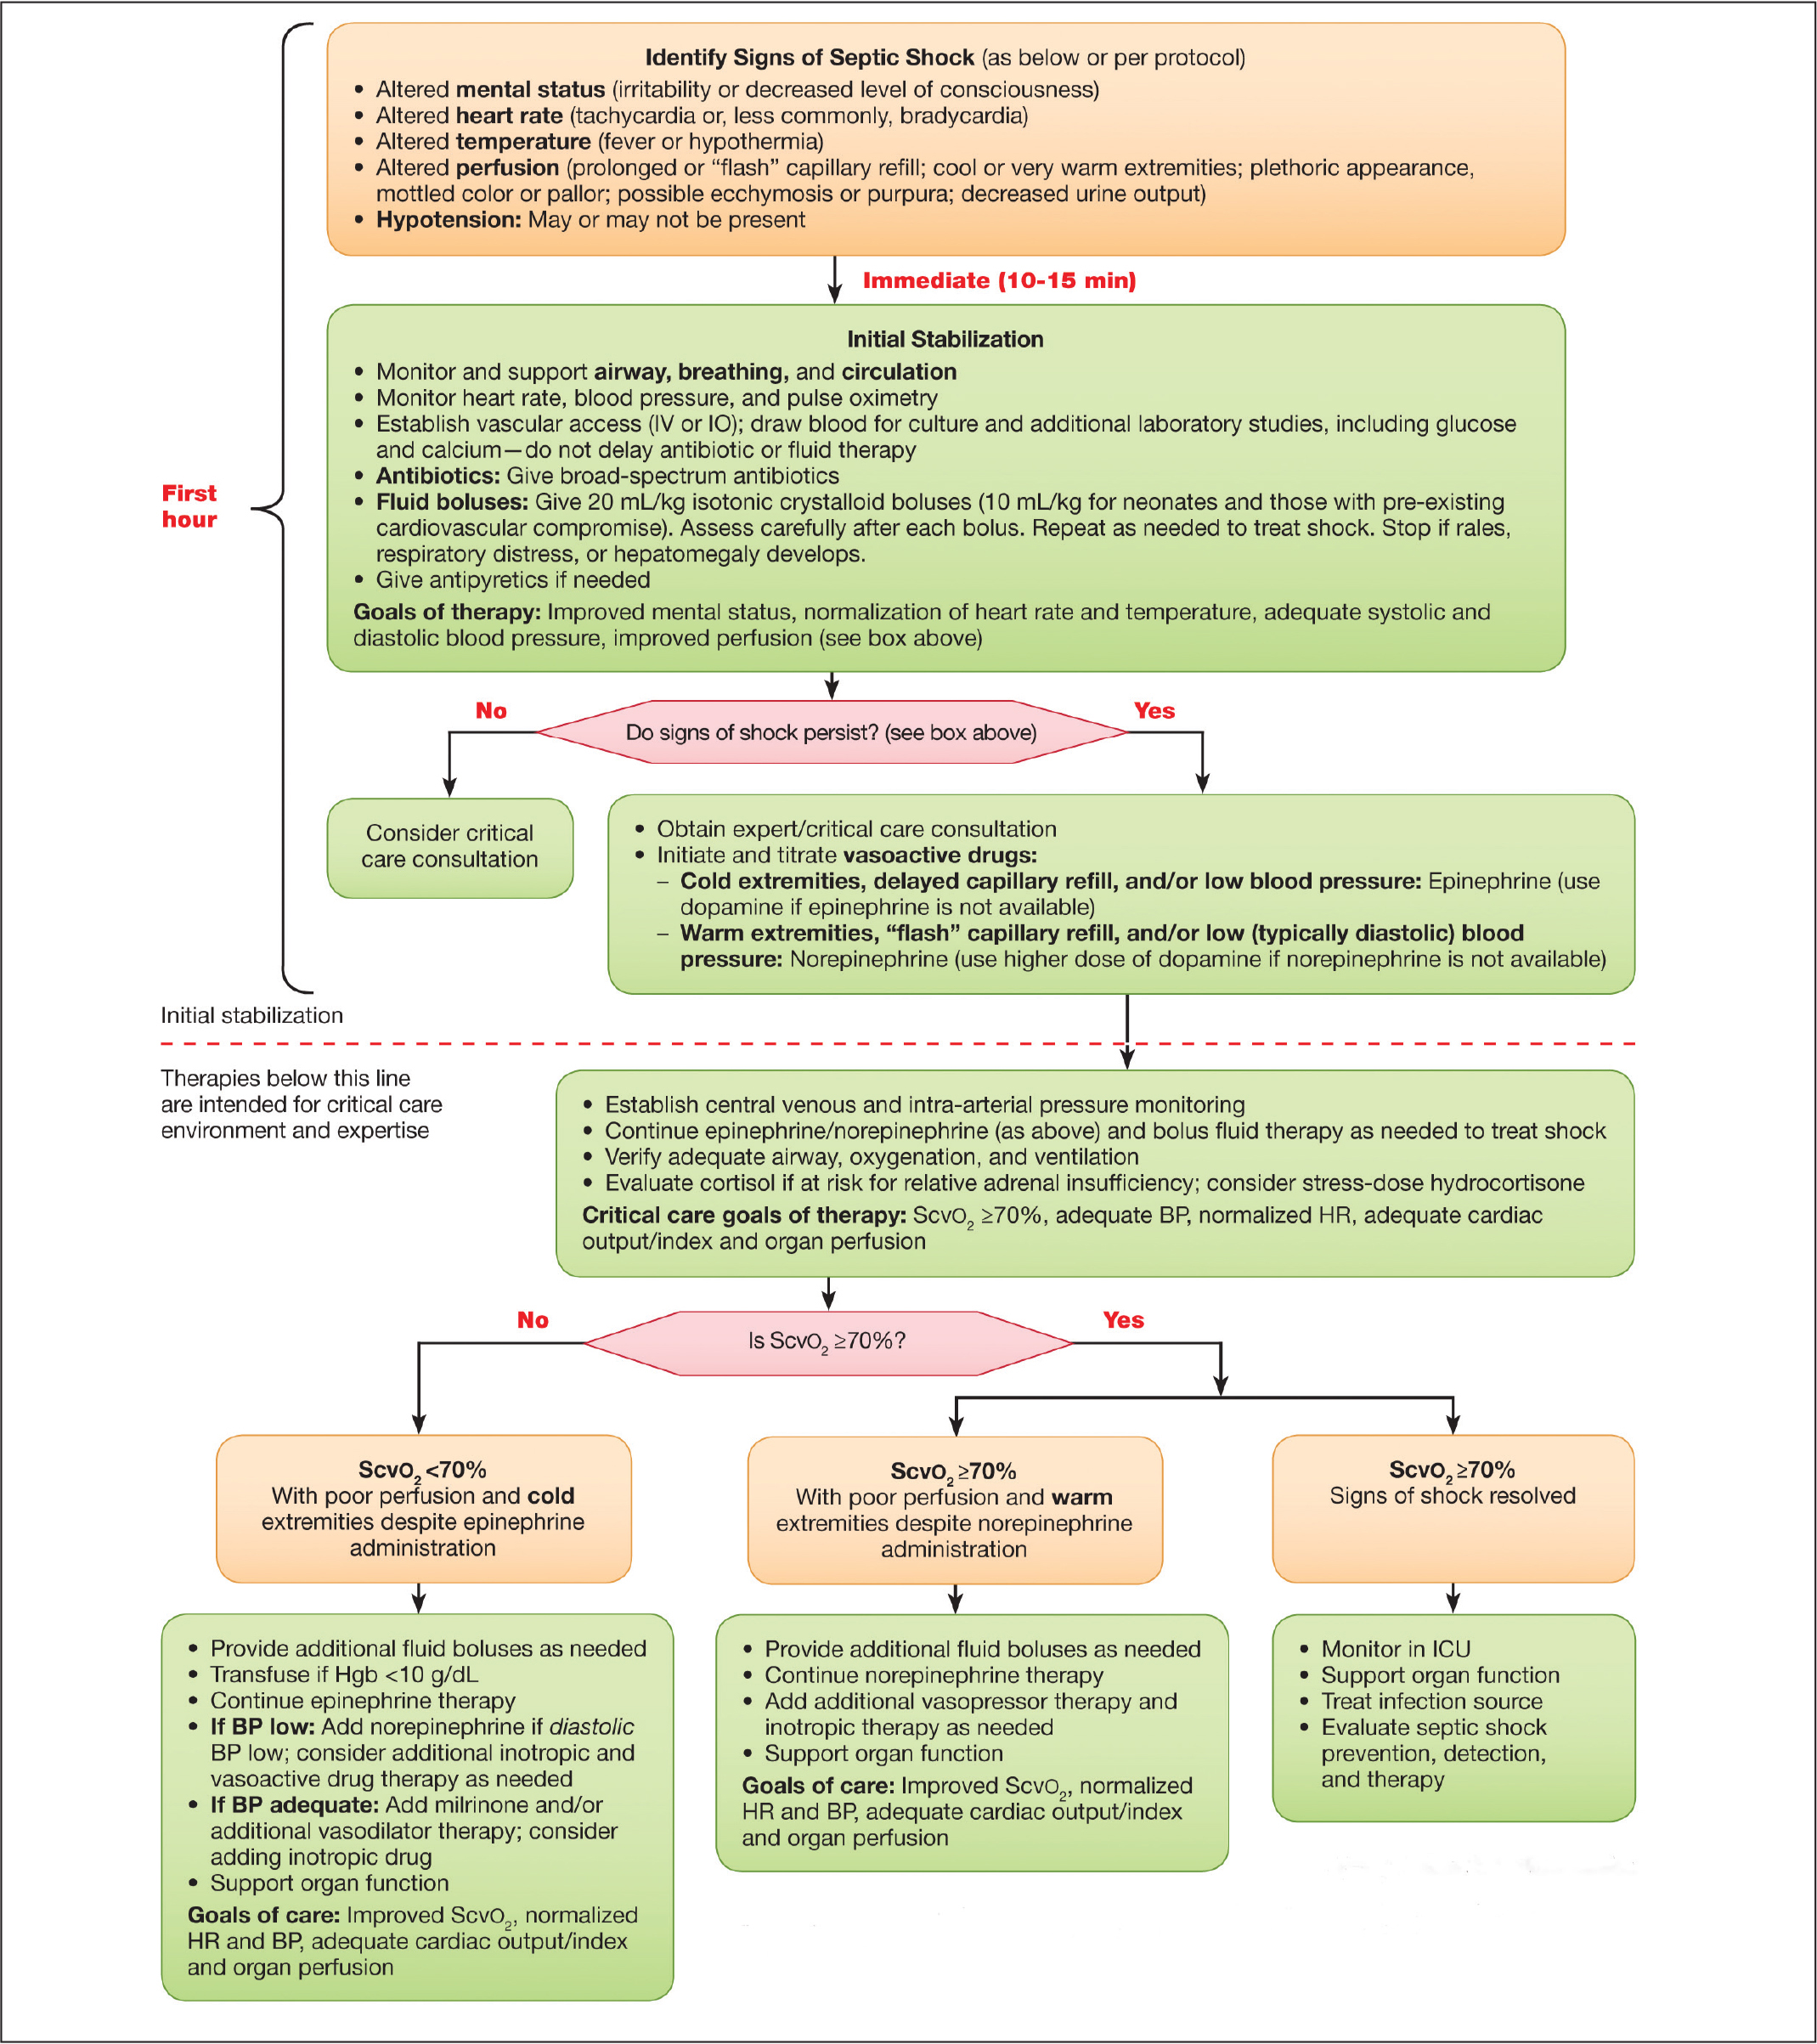 Pediatric septic shock algorithm. BP, blood pressure; HR, heart rate; ICU, intensive care unit; IO, intraosseous; IV, intravenous; ScvO2, central venous oxygen saturation. Reprinted with permission from the Pediatric Advanced Life Support Provider Manual ©2016 American Heart Association, Inc., page 221, Figure 40.32